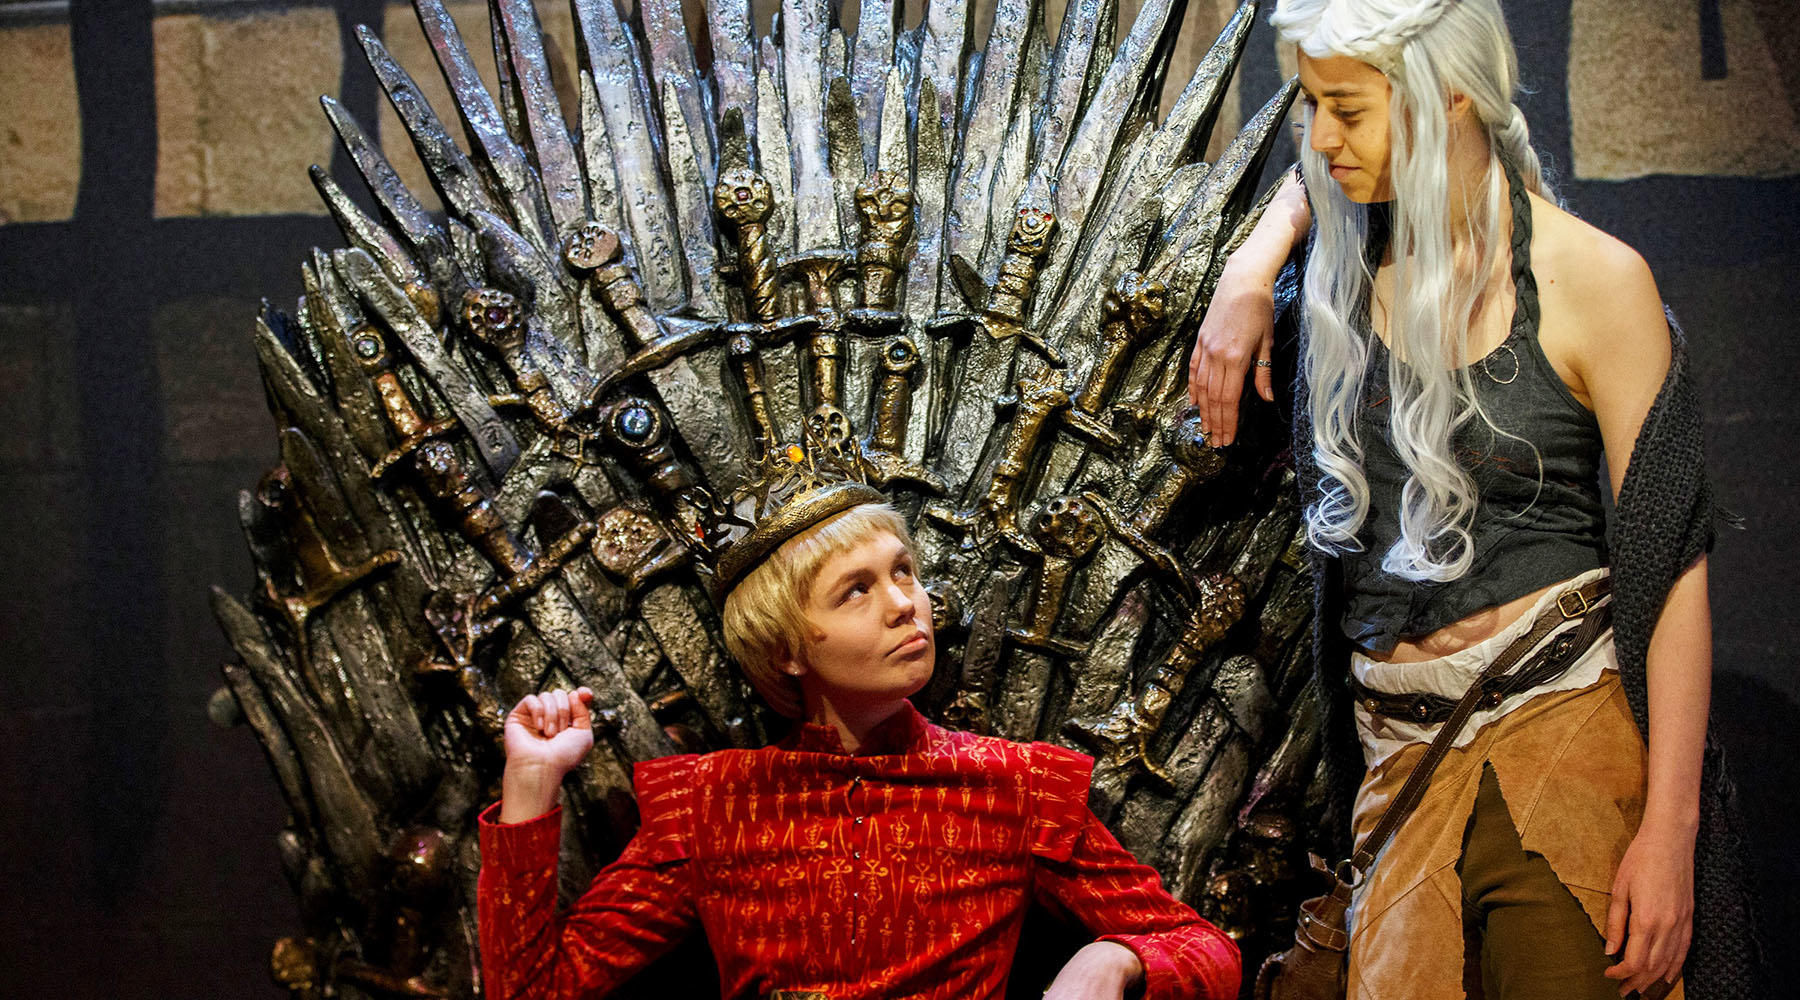 Cosplaying with the Iron Throne